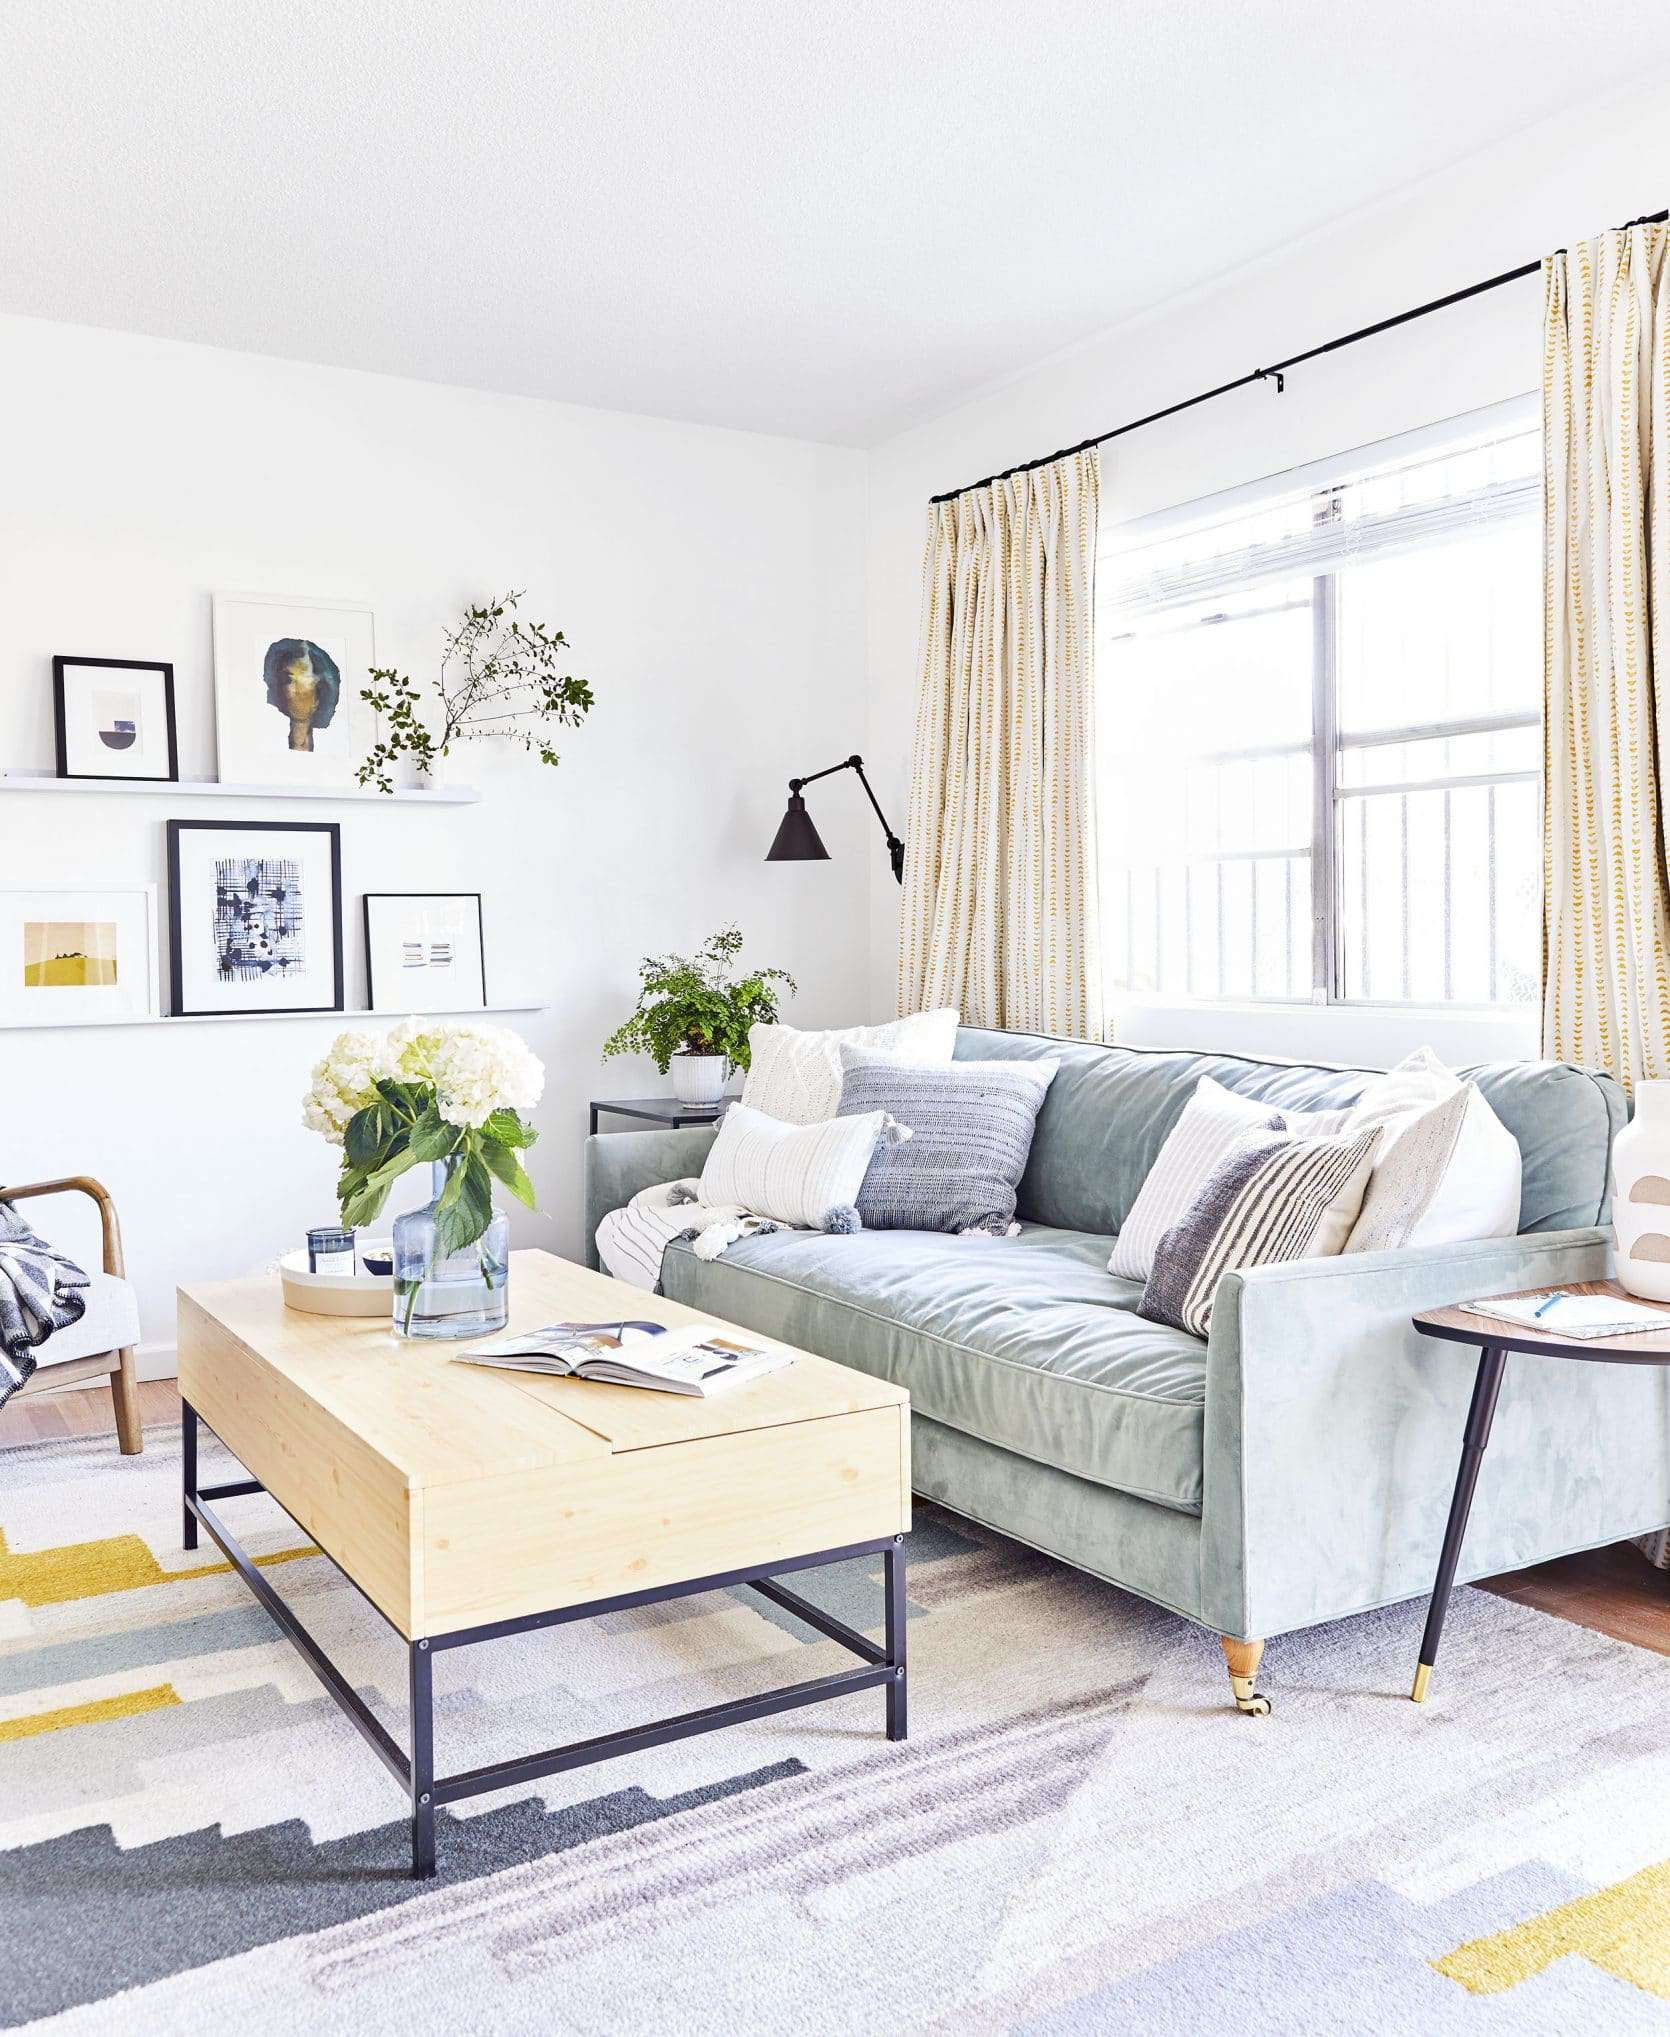 Our All Time Favorite Storage Furniture And Some Products For Every Room In Your Home Emily Henderson Home Decor Cute Living Room Living Room Designs